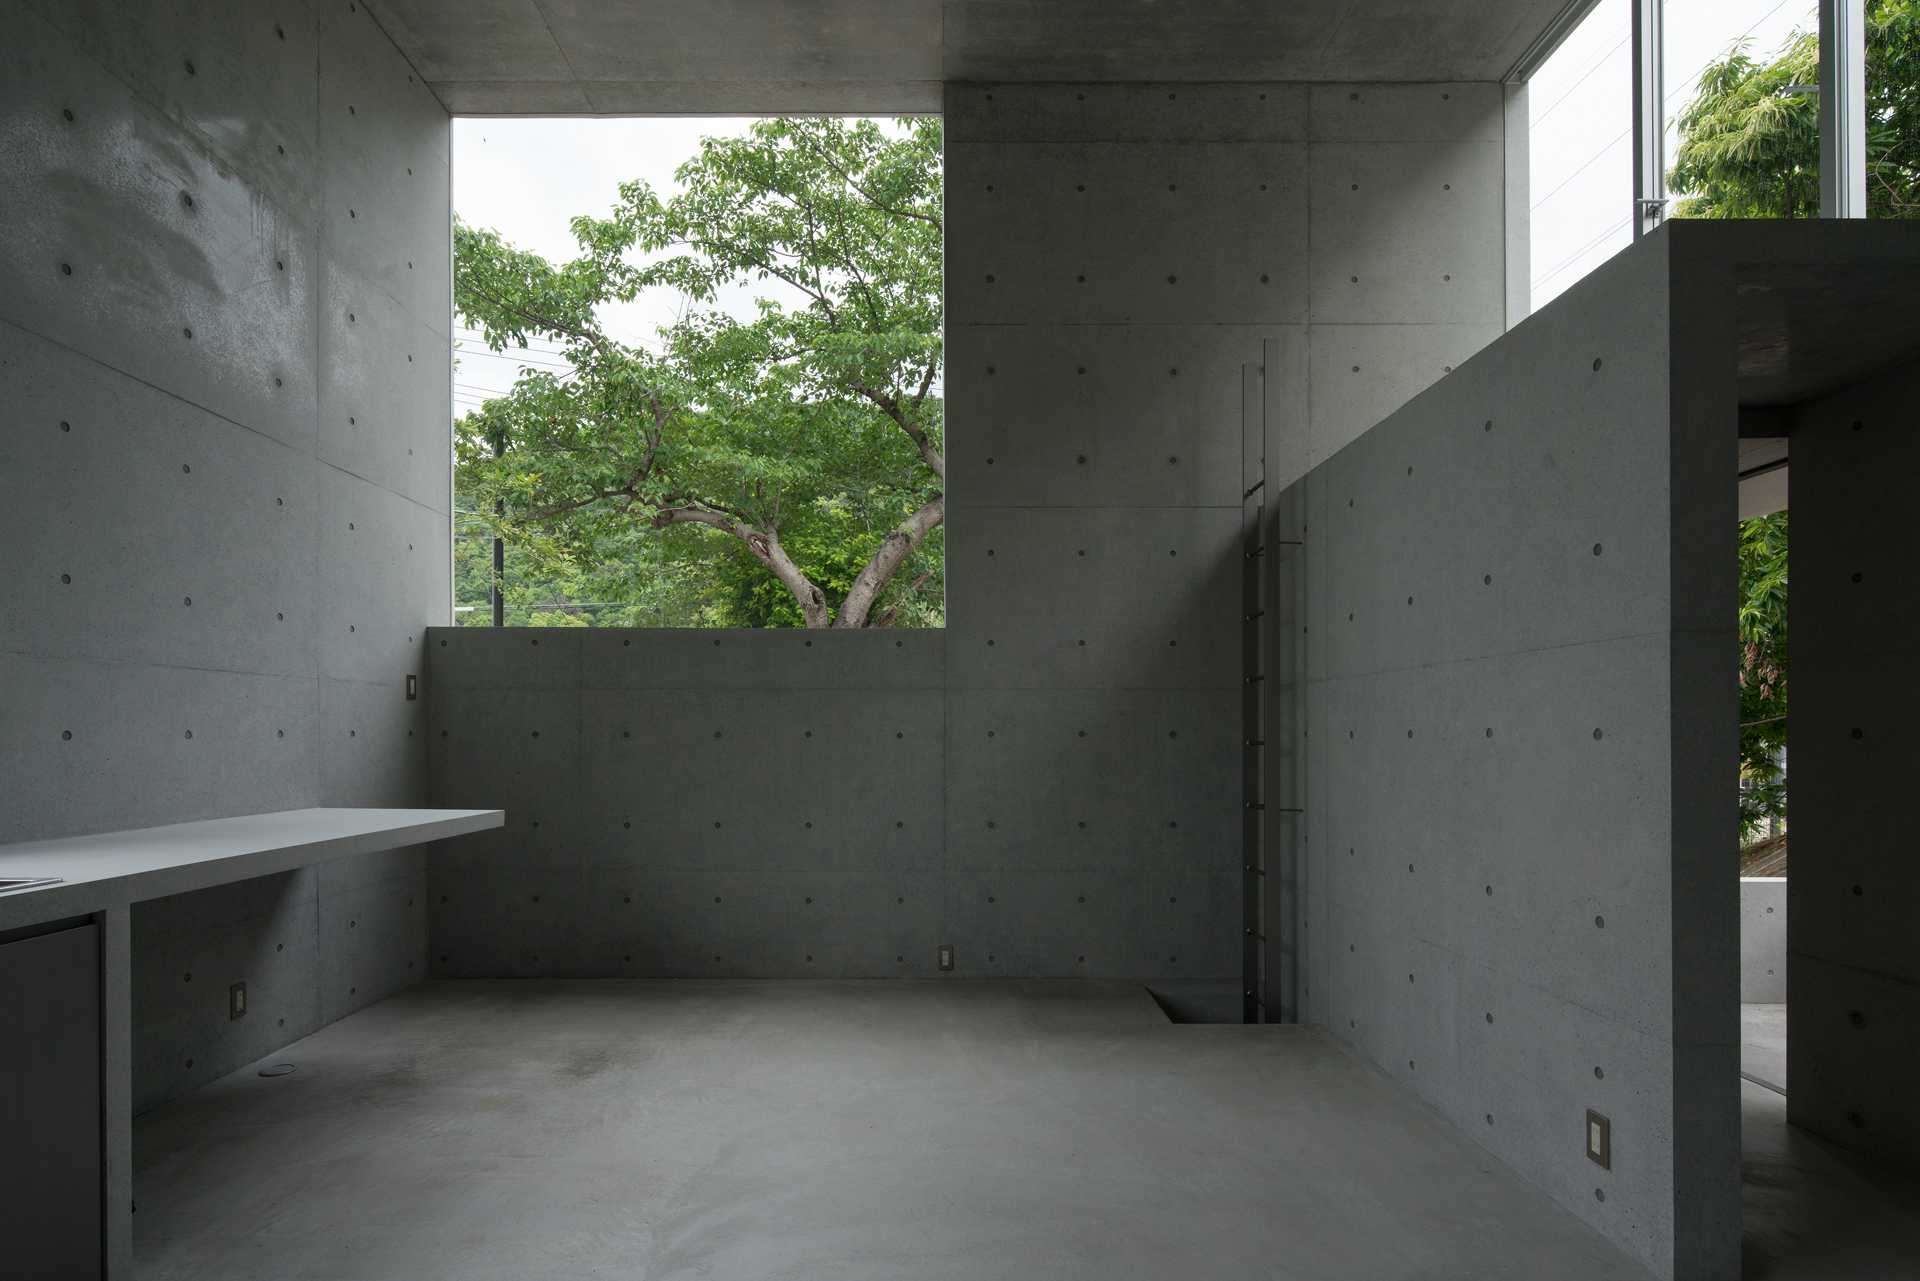 Concrete House  - 23 8 36